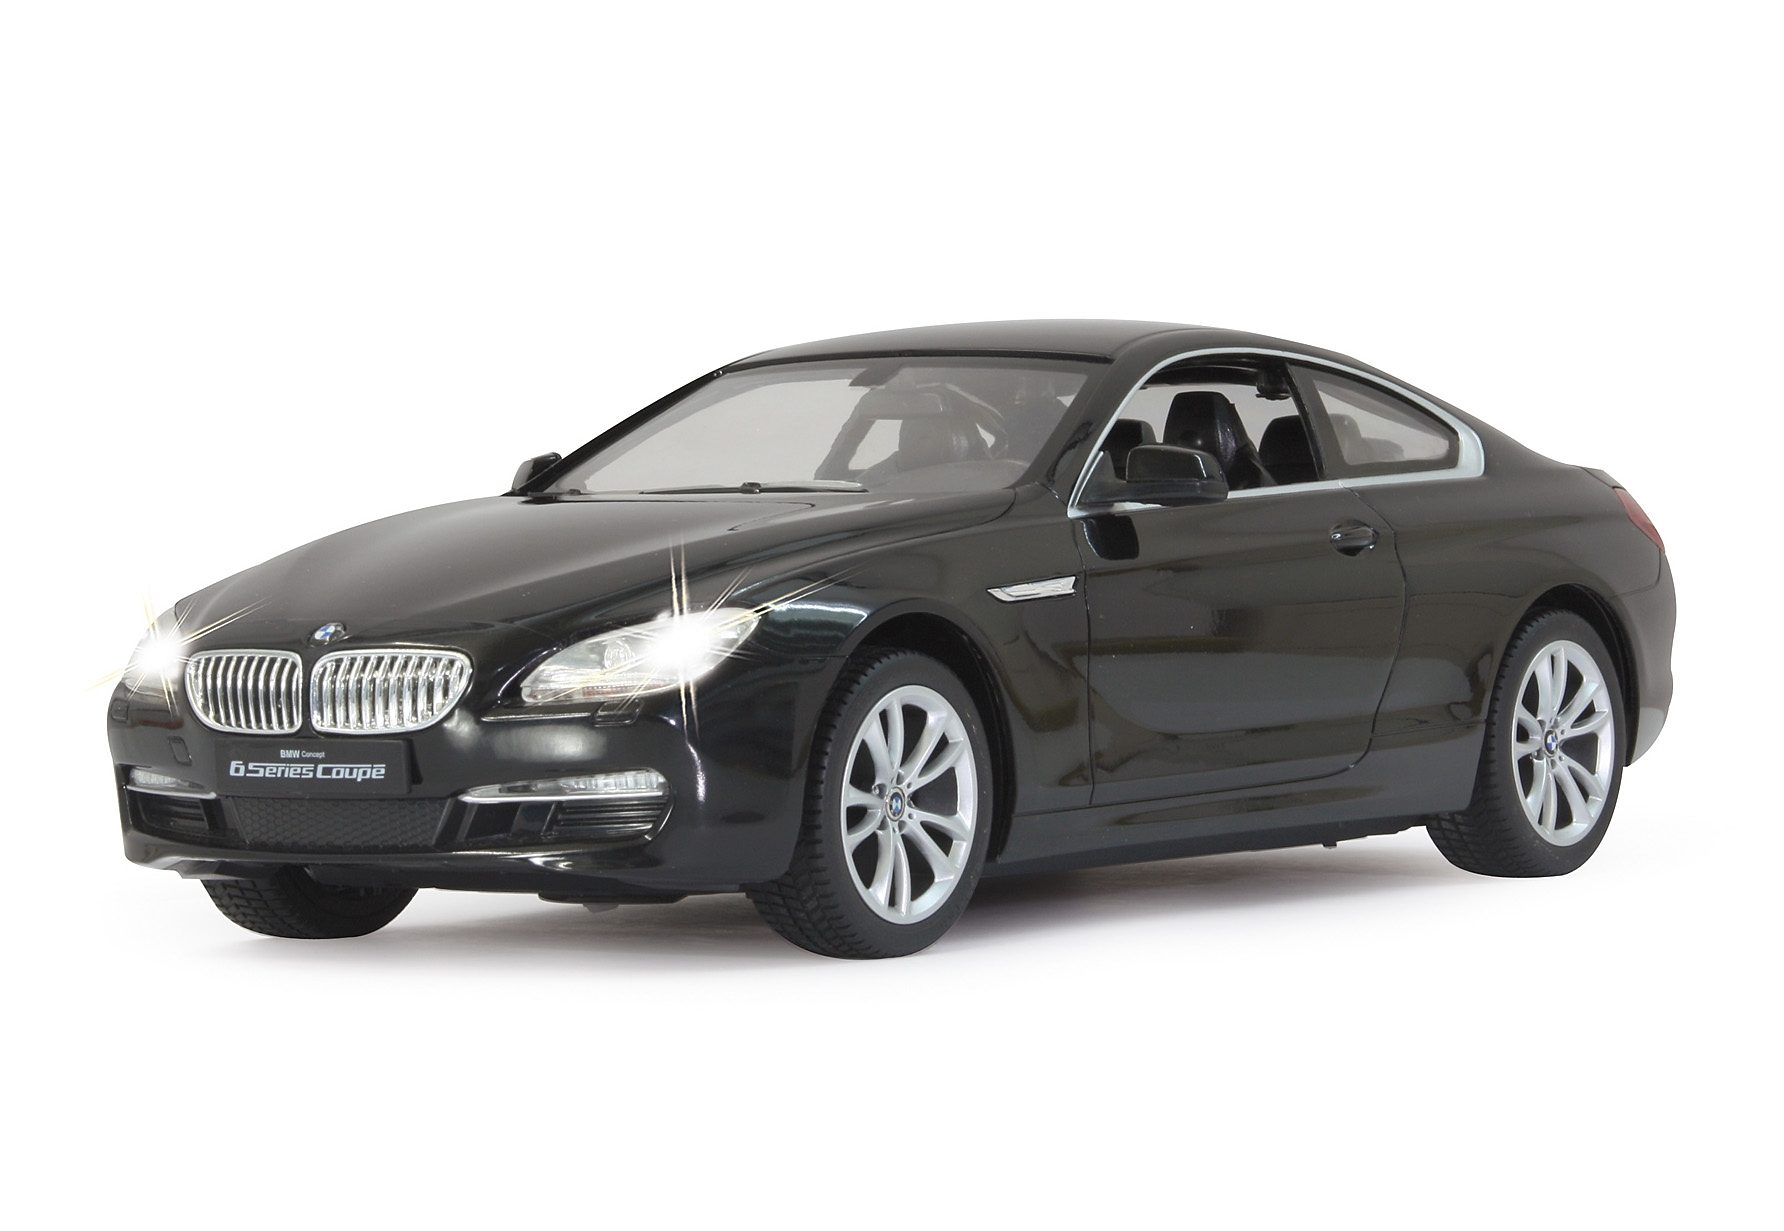 JAMARA RC Fahrzeug, »BMW 650i - 27 MHz schwarz«